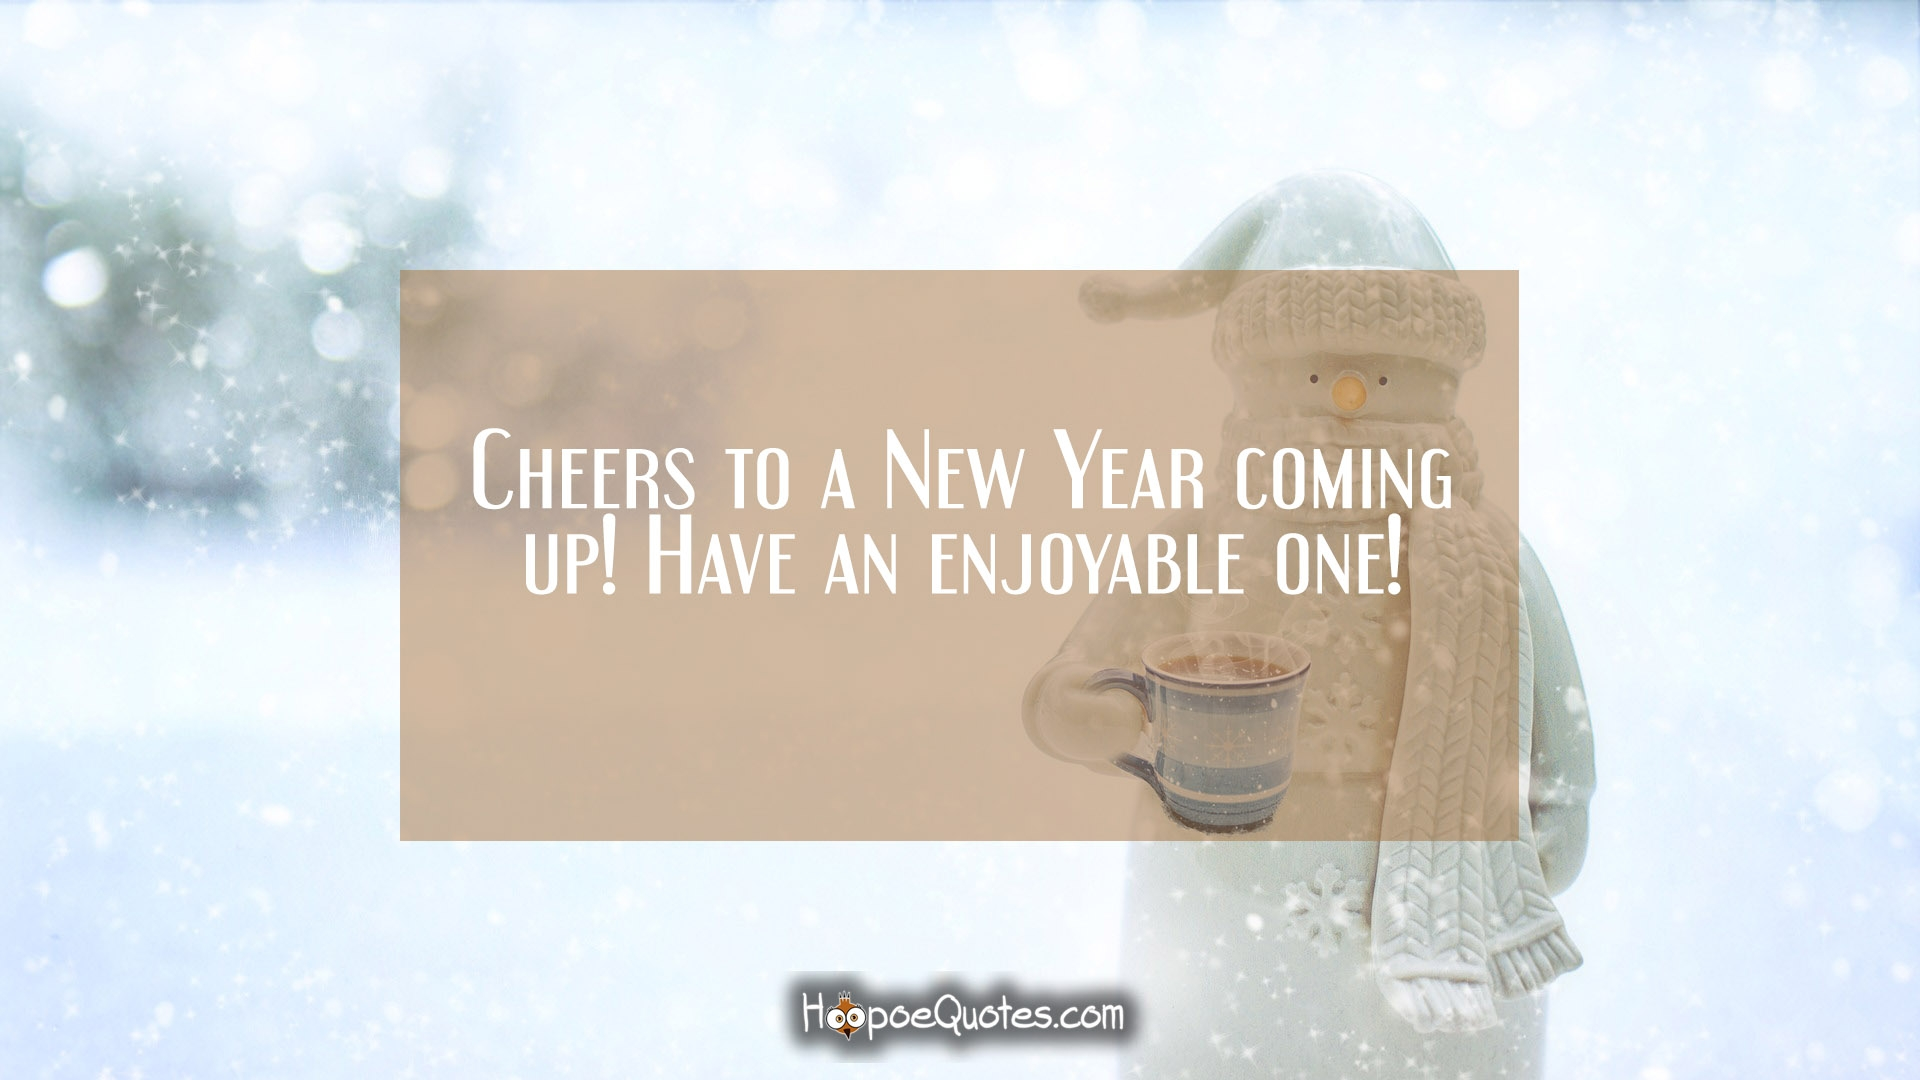 New Year Wishes - HoopoeQuotes